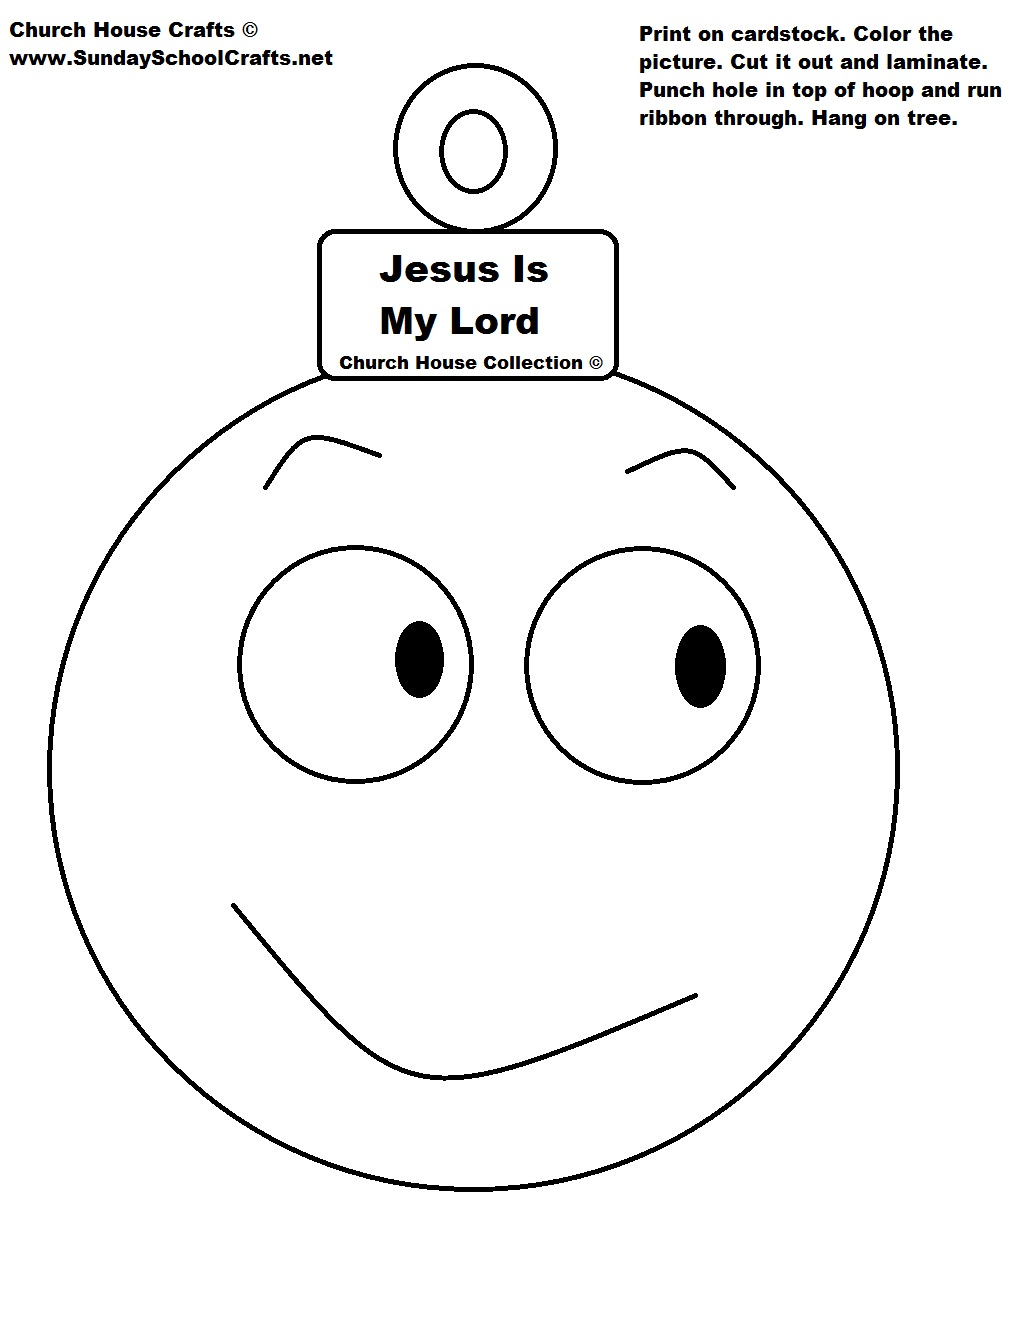 Church house collection blog printable christmas ornament cutouts you might also like christmas crafts christmas lessons happy birthday jesus coloring pages happy birthday jesus lesson snowman lesson pronofoot35fo Image collections